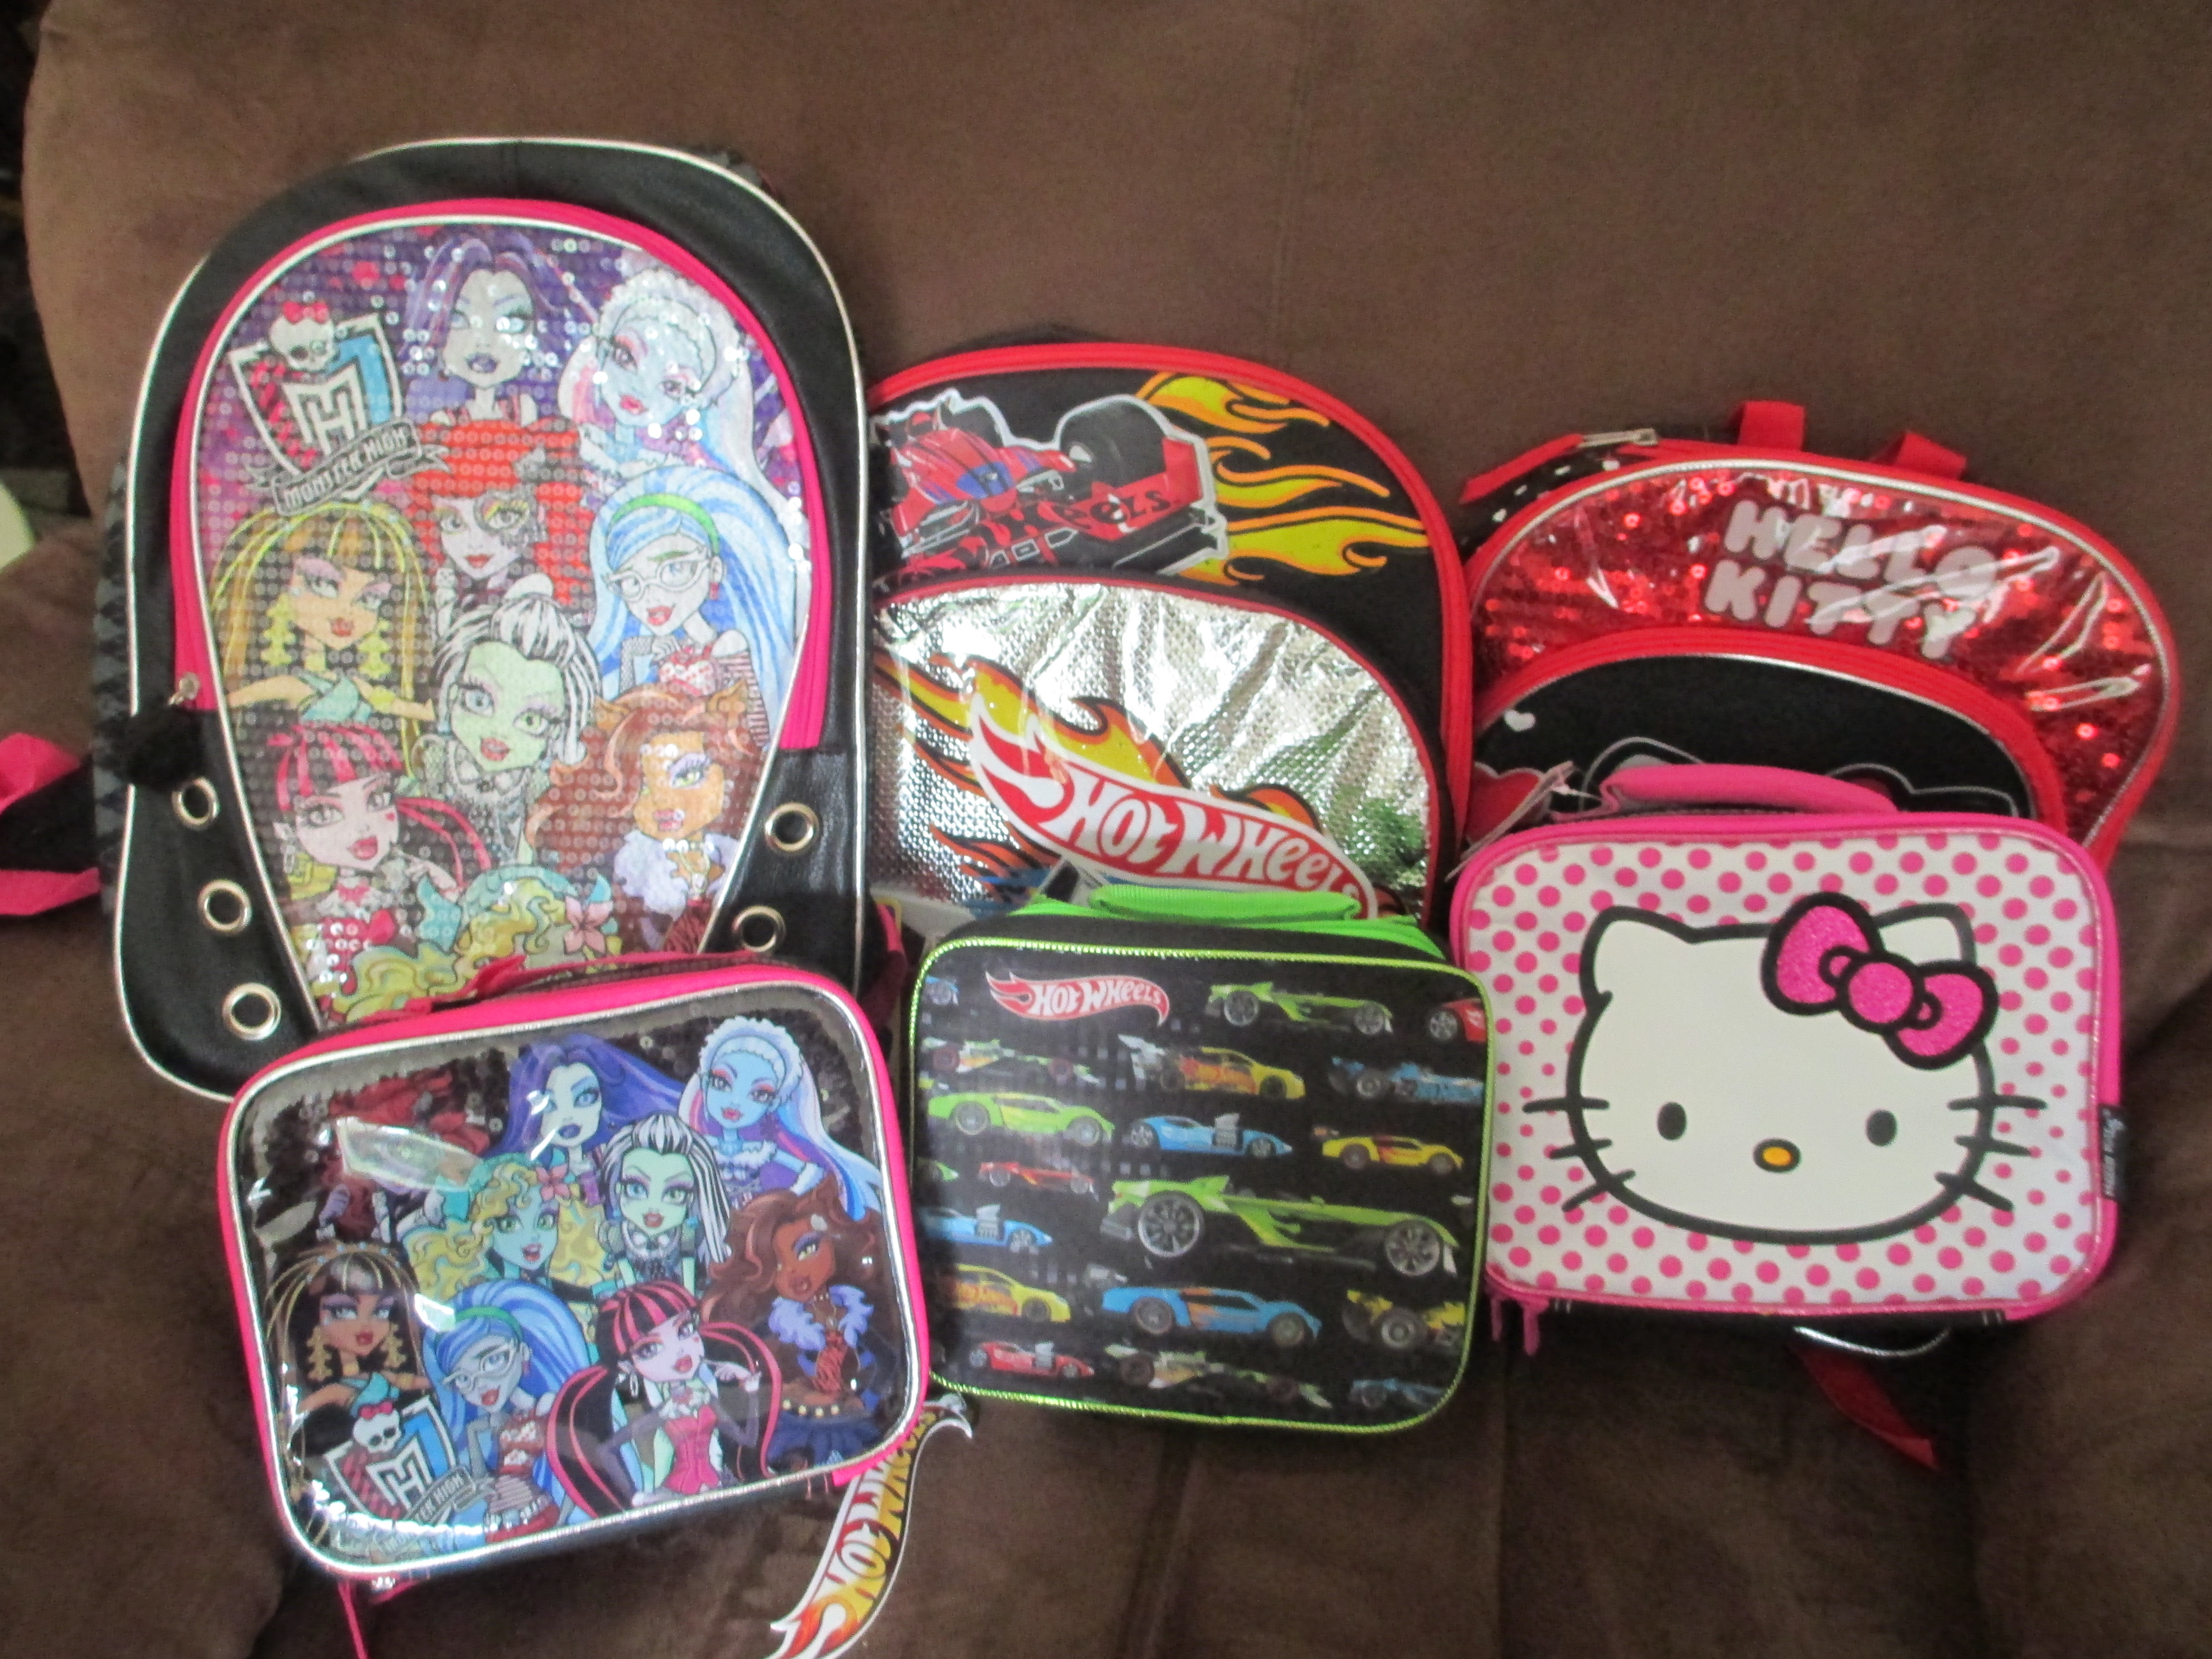 The Backpacks All Have Enough Pockets For There School Gear You Checked Out Toys R Us